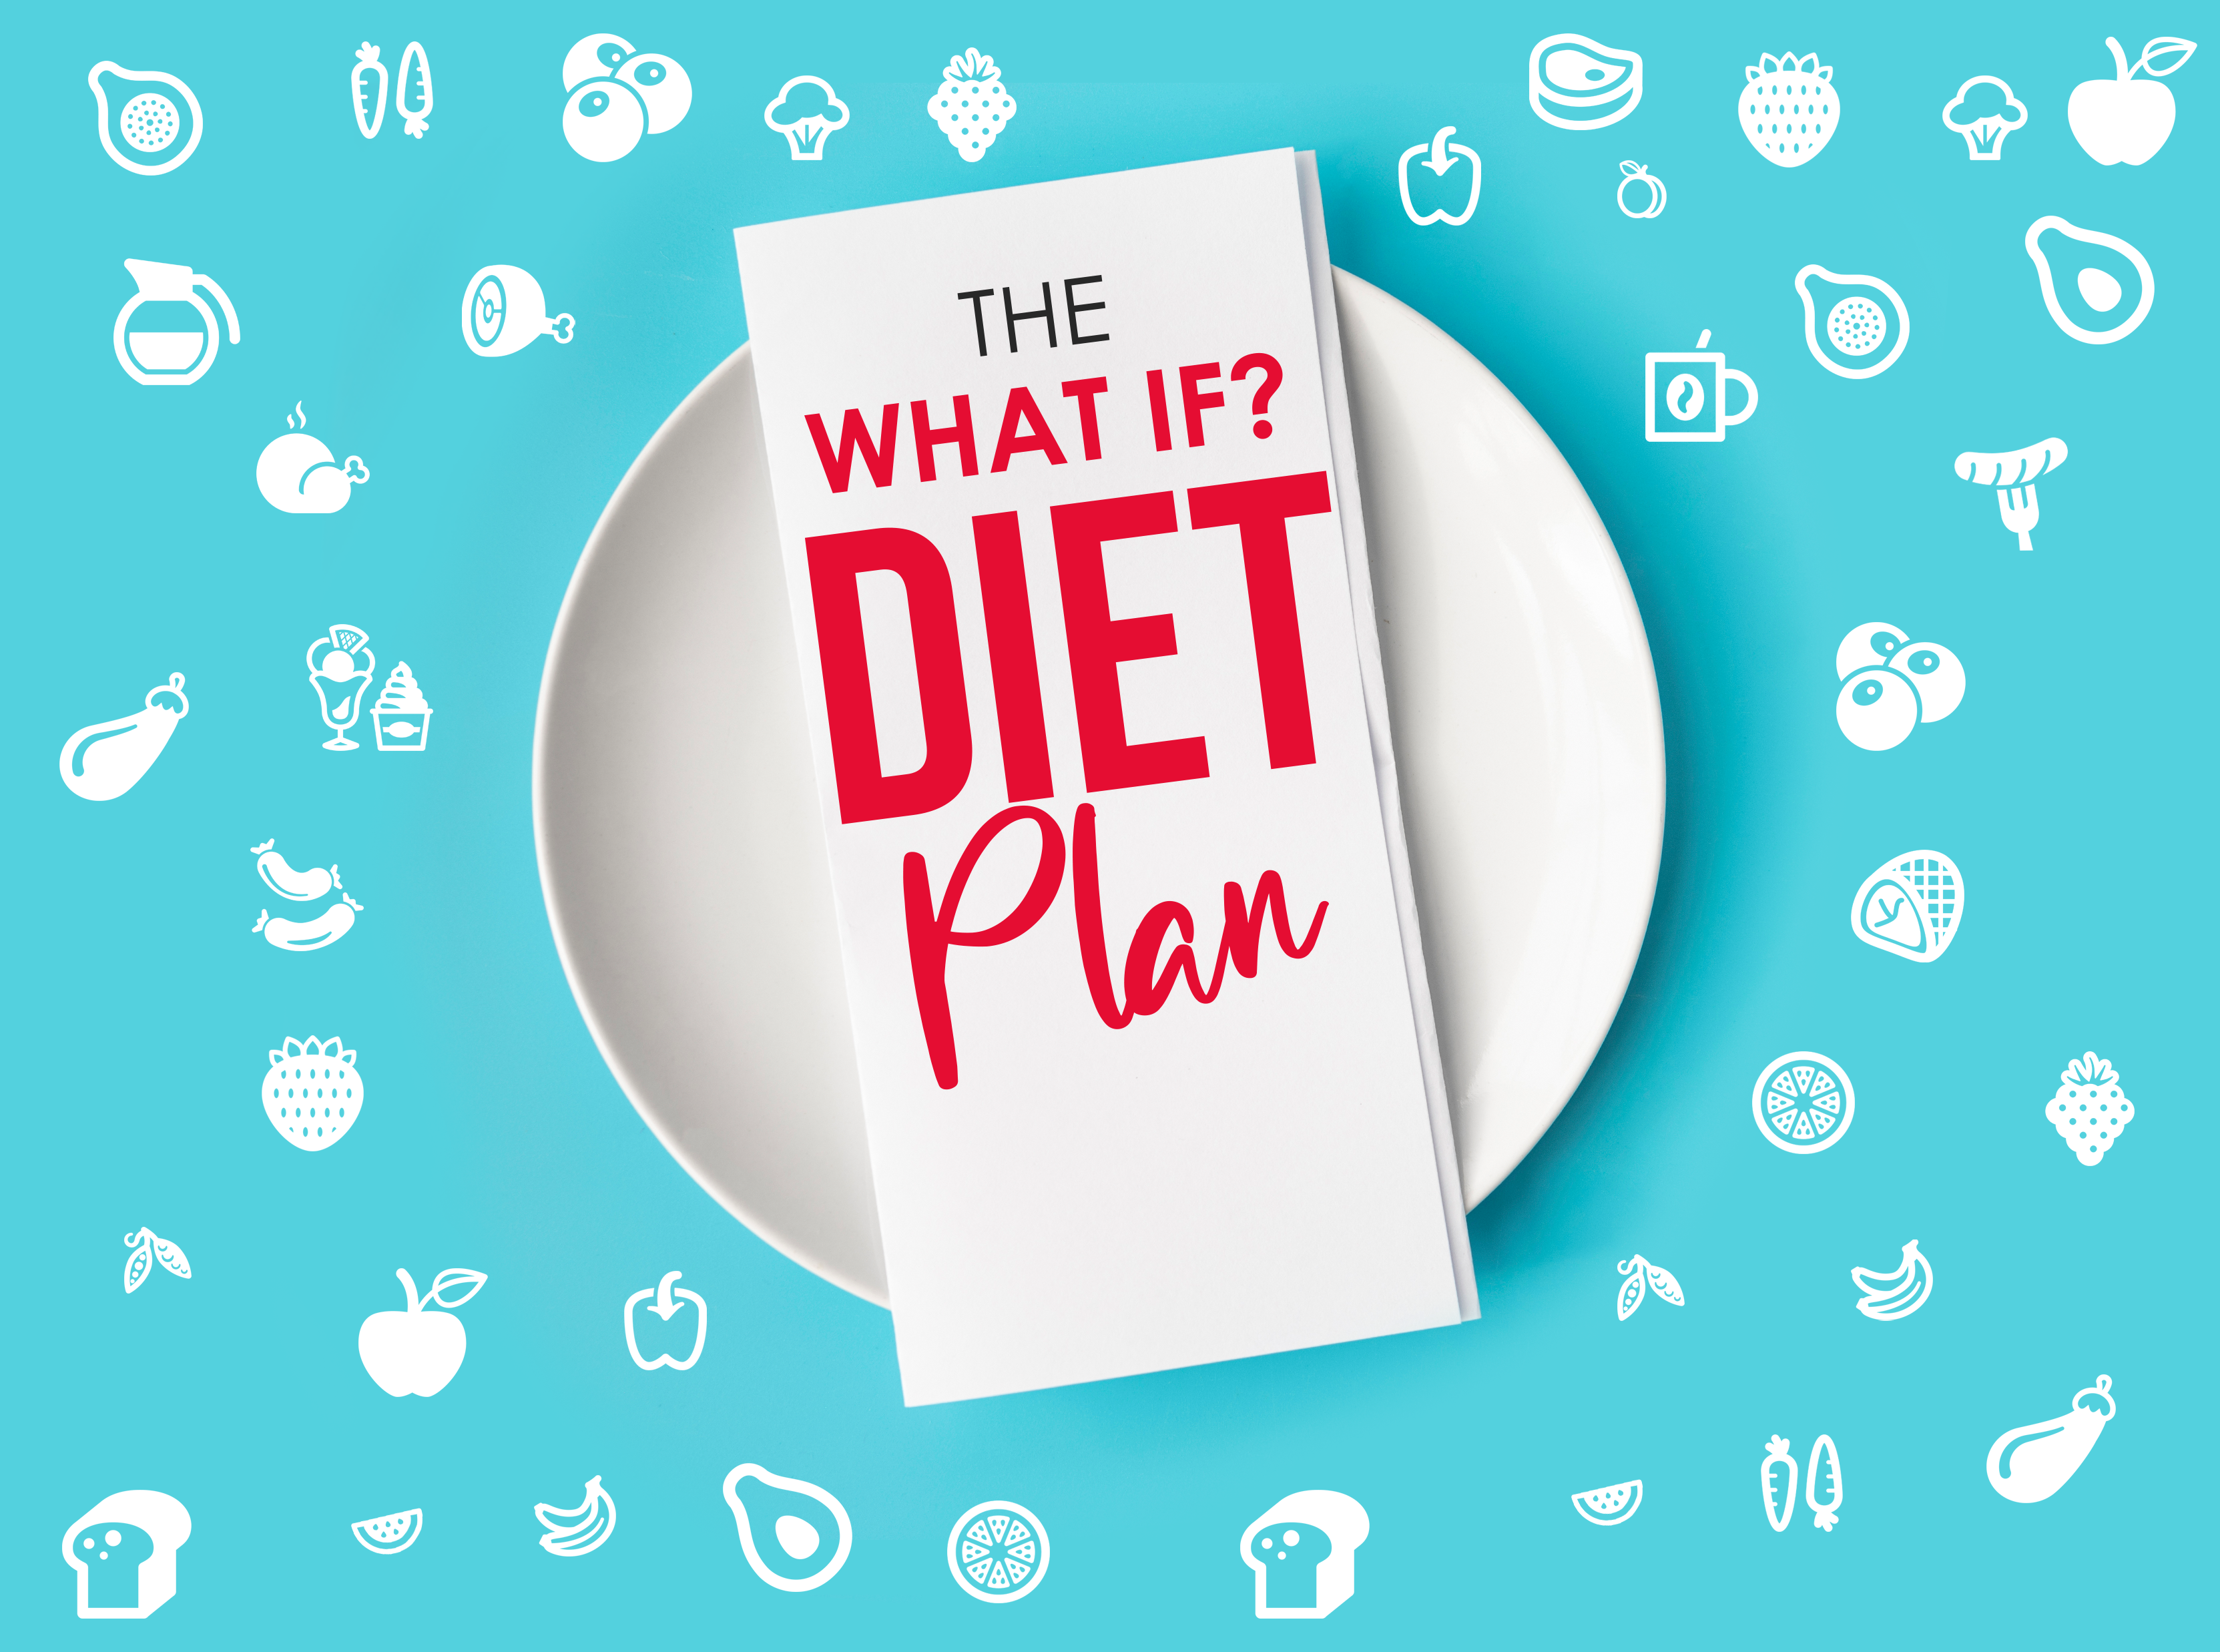 The What IF? Diet Plan